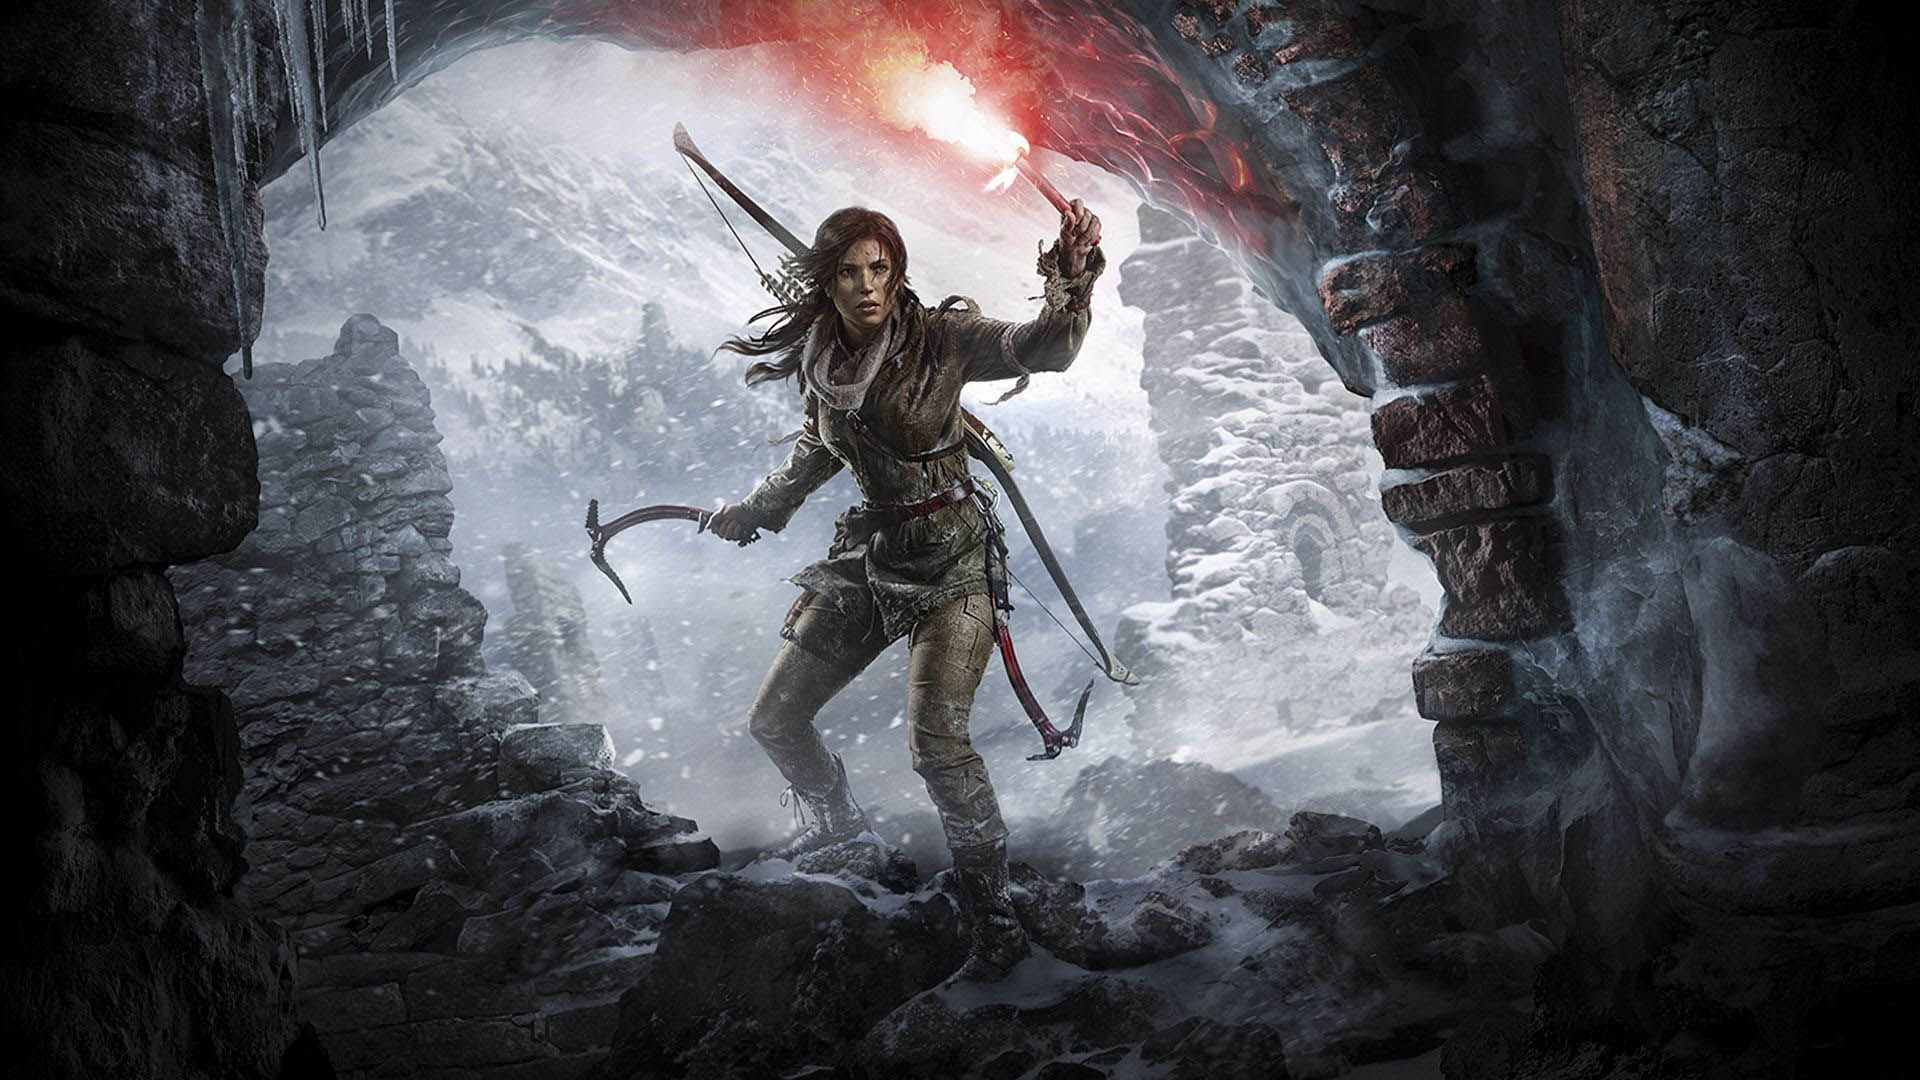 buy-rise-of-the-tomb-raider-wallpaper.jpg